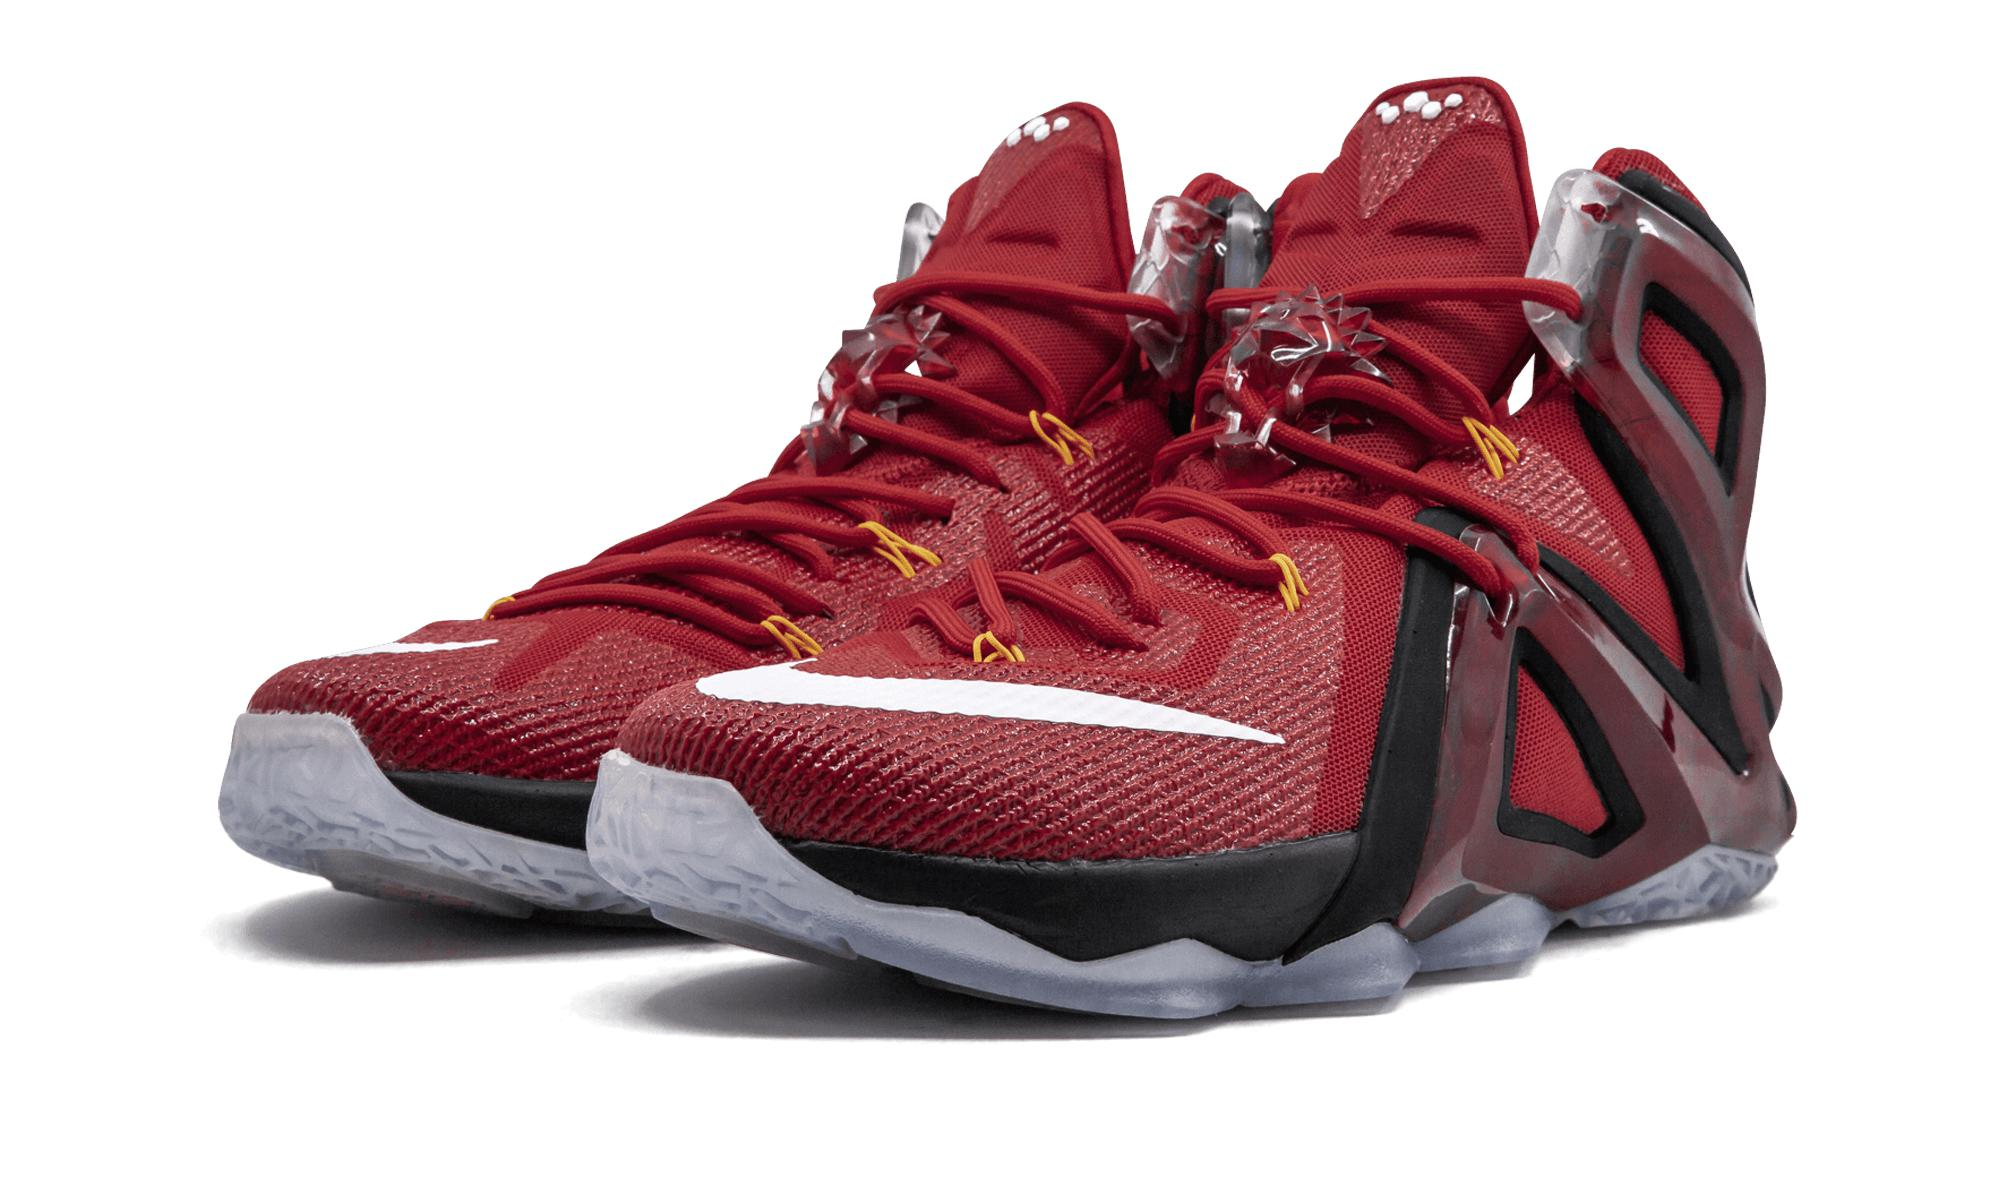 2819dad7ed1 Lyst - Nike Lebron 12 Elite in Red for Men